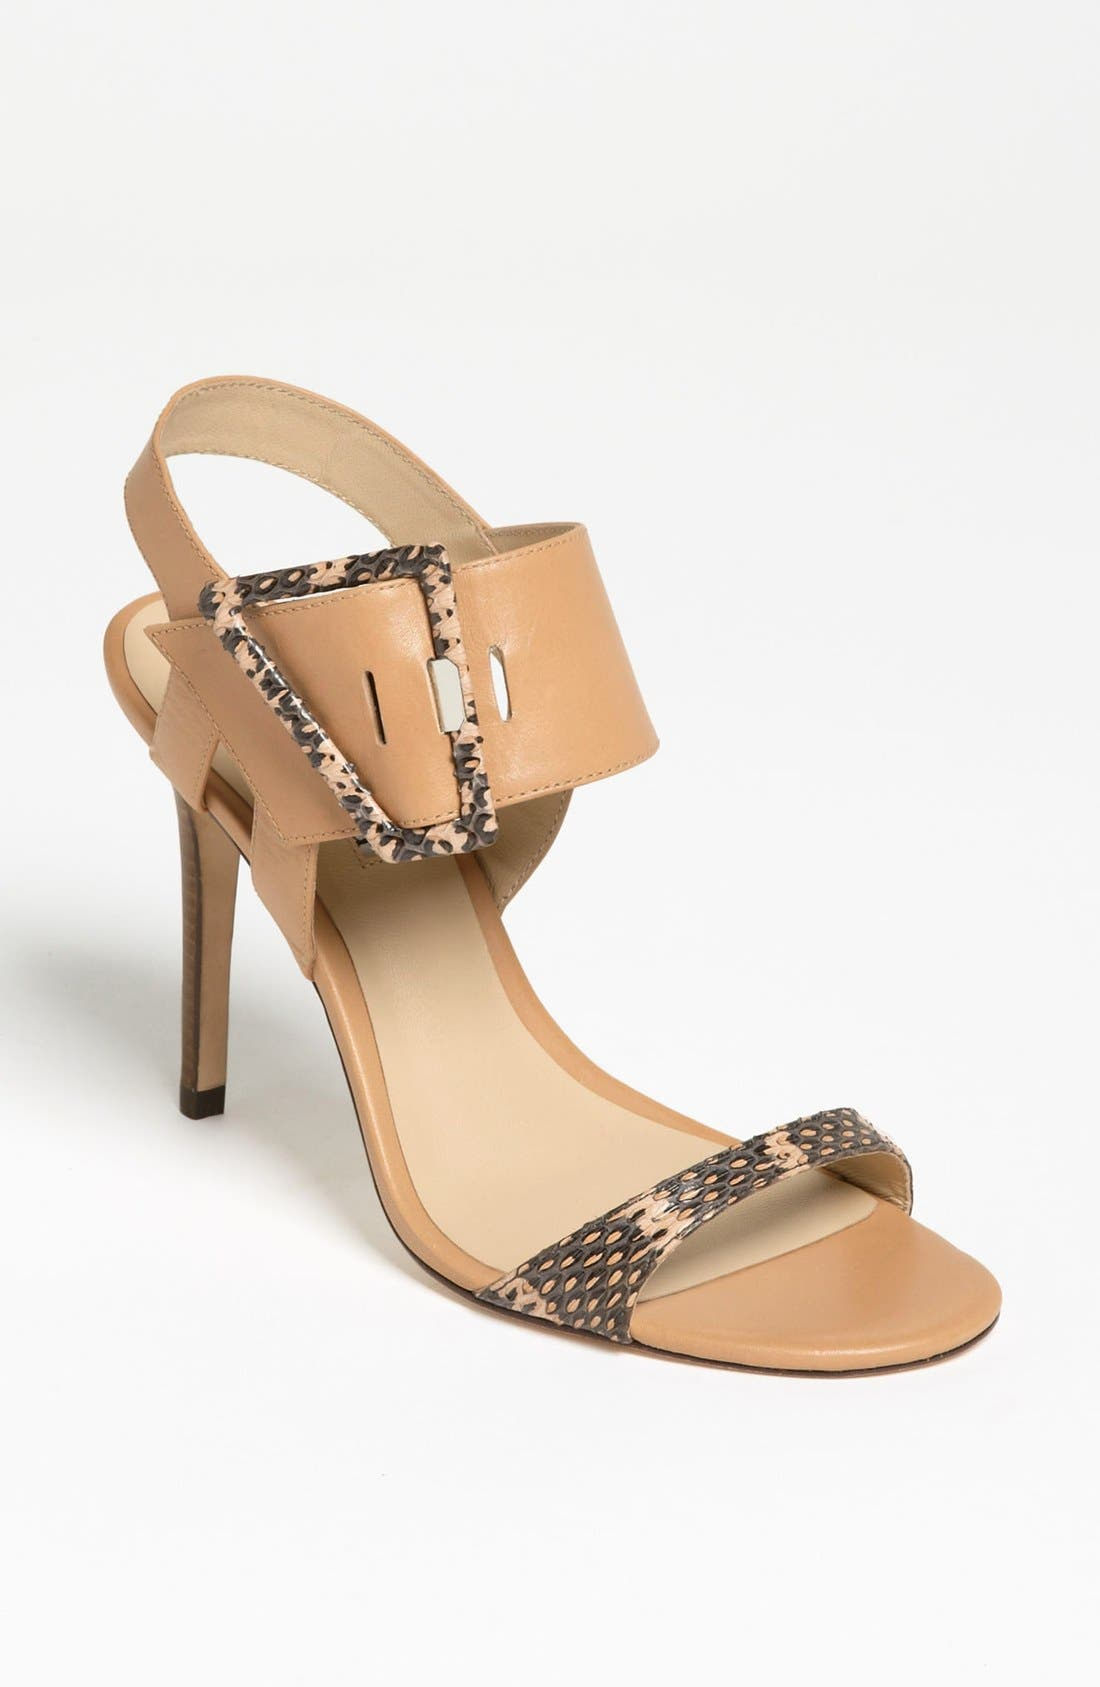 Alternate Image 1 Selected - Charles by Charles David 'Fuze' Sandal